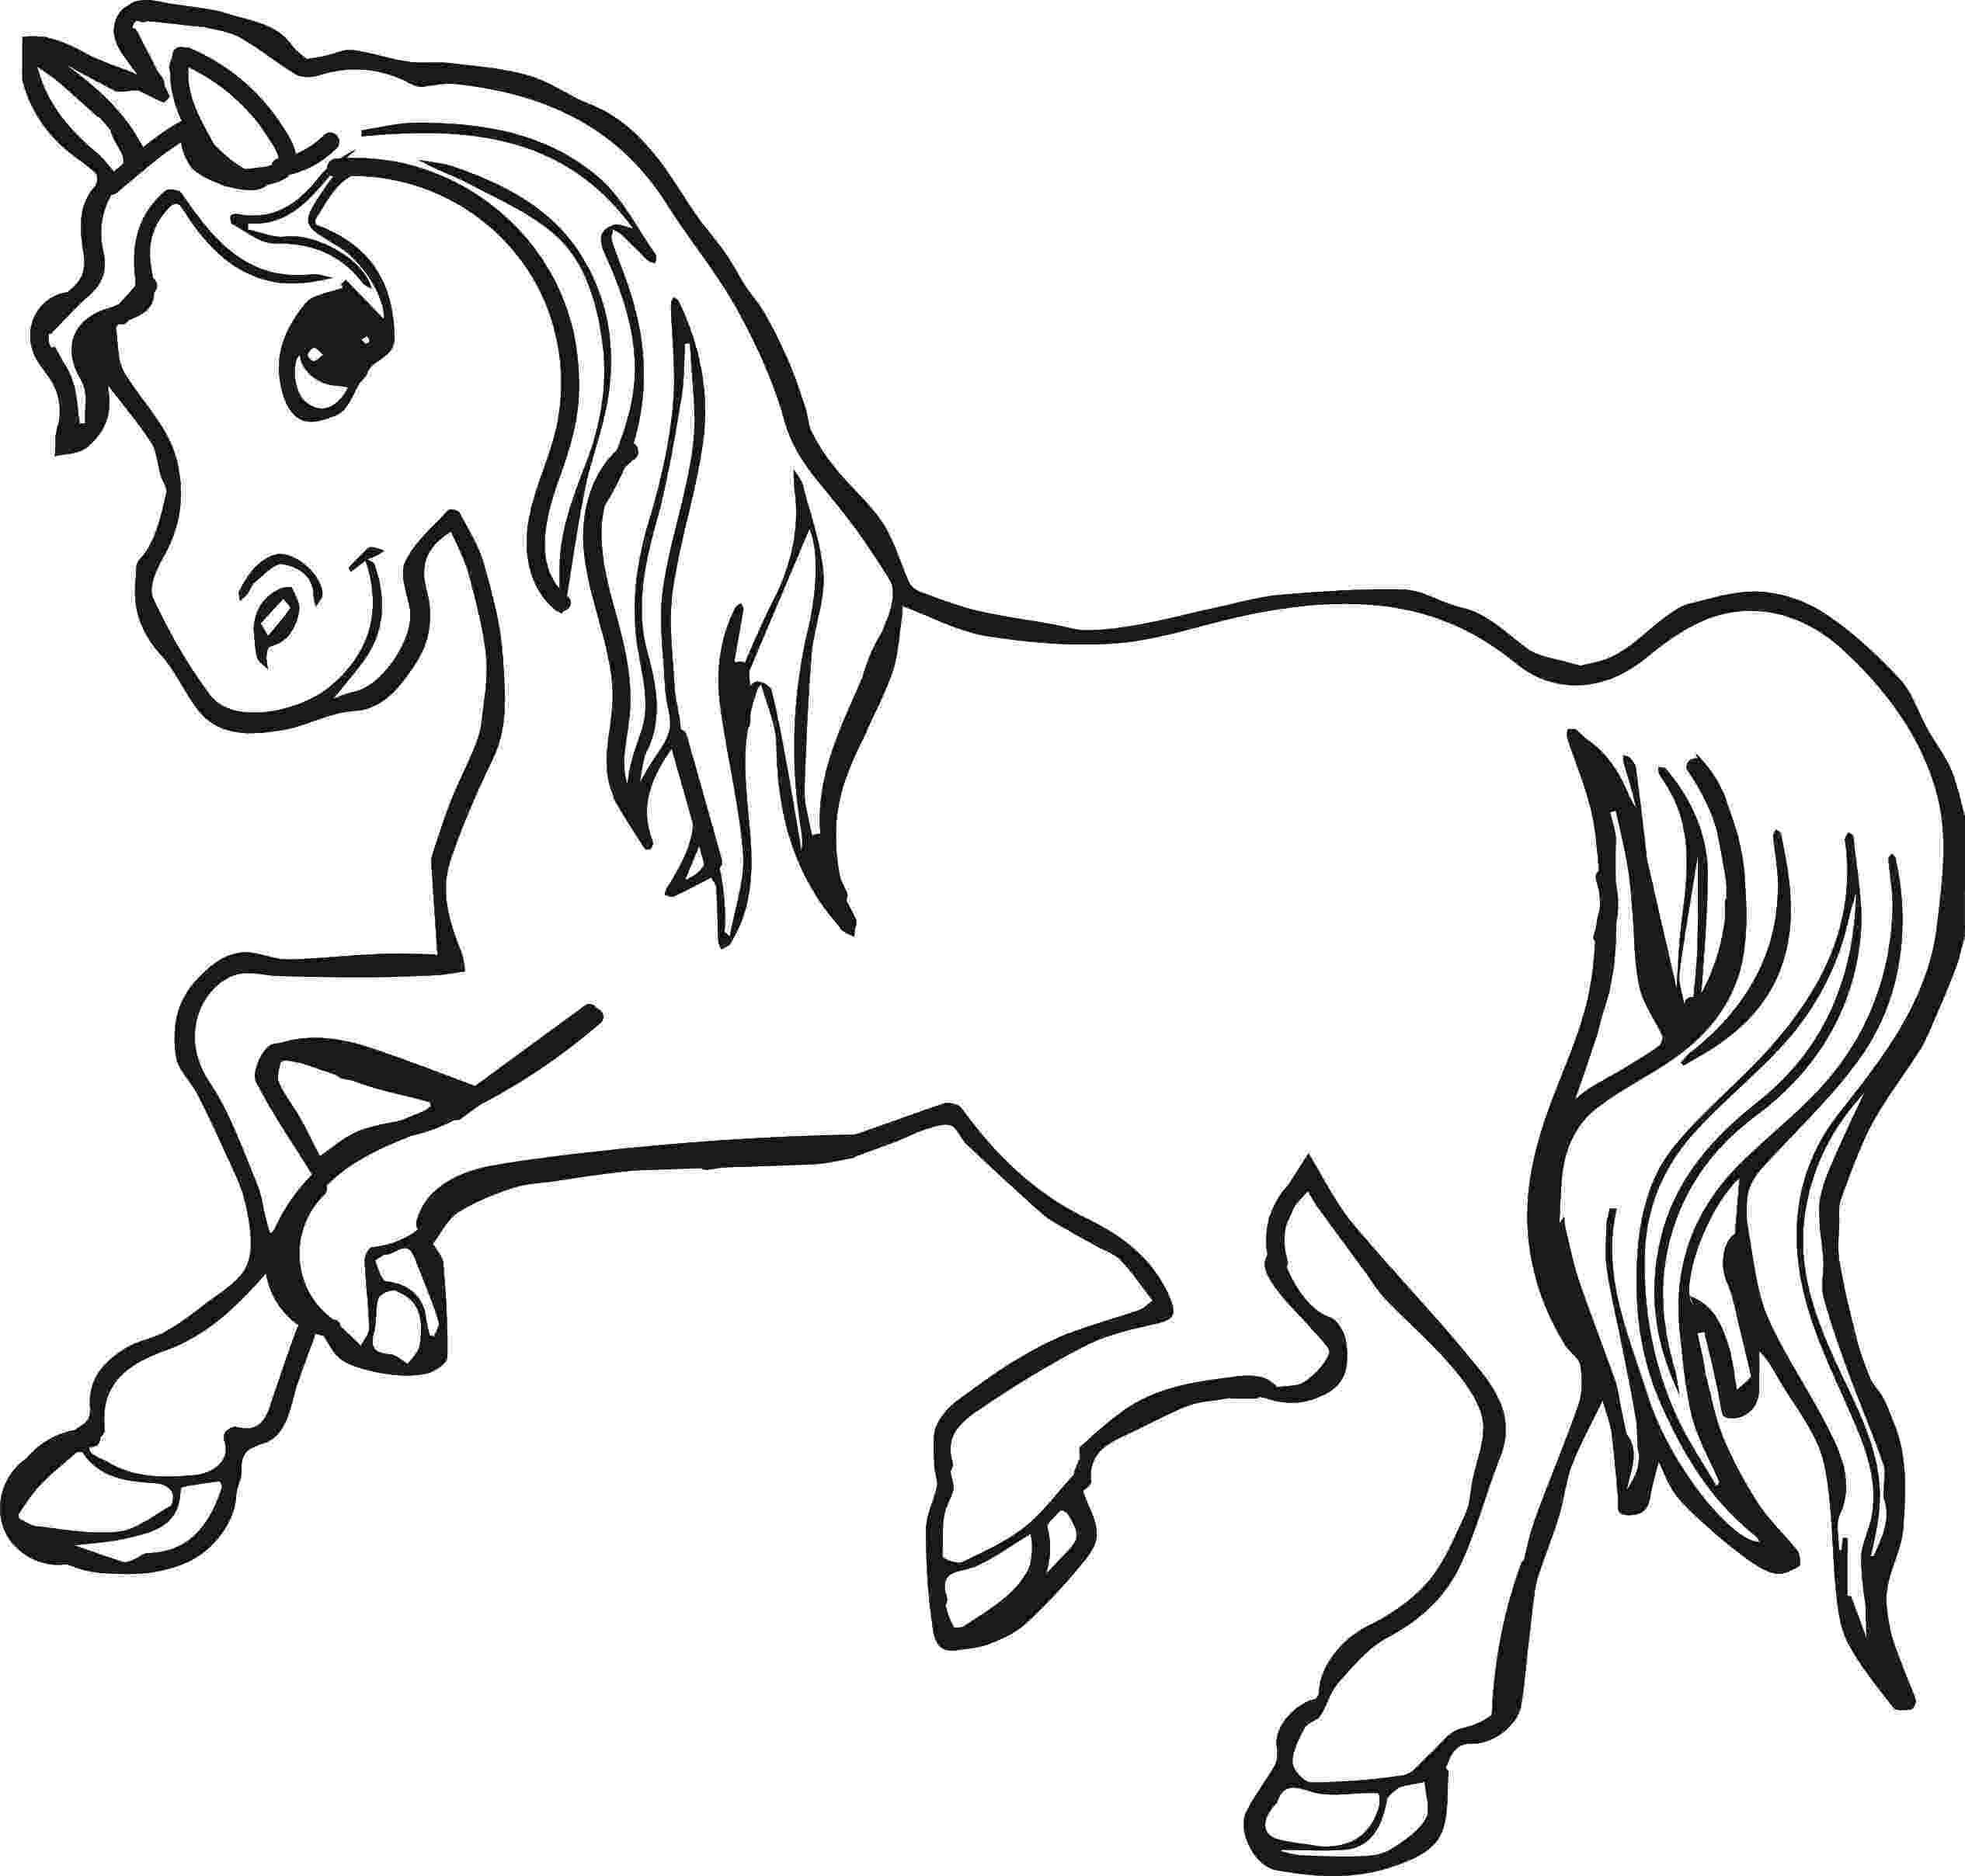 horses to color 30 best horse coloring pages ideas we need fun horses color to